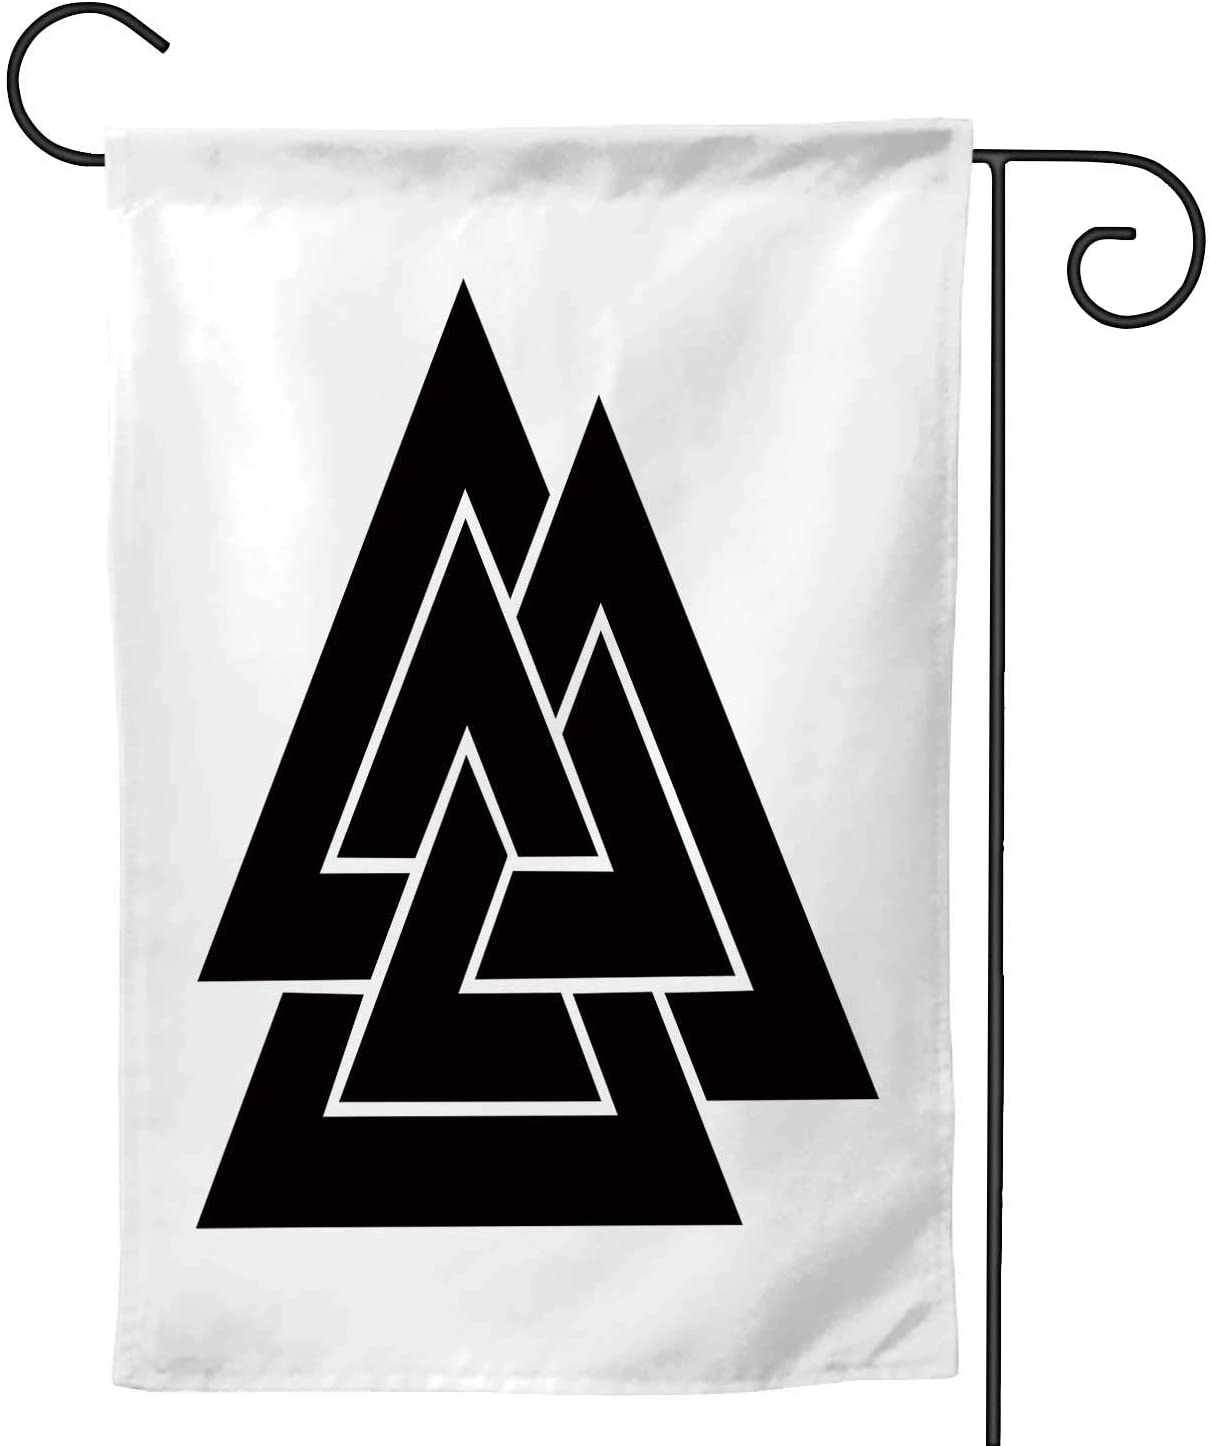 C COABALLA Valknut Icon, Garden Flag Double Sized,Rustic Yard Outdoor Decoration 12.5''x18''